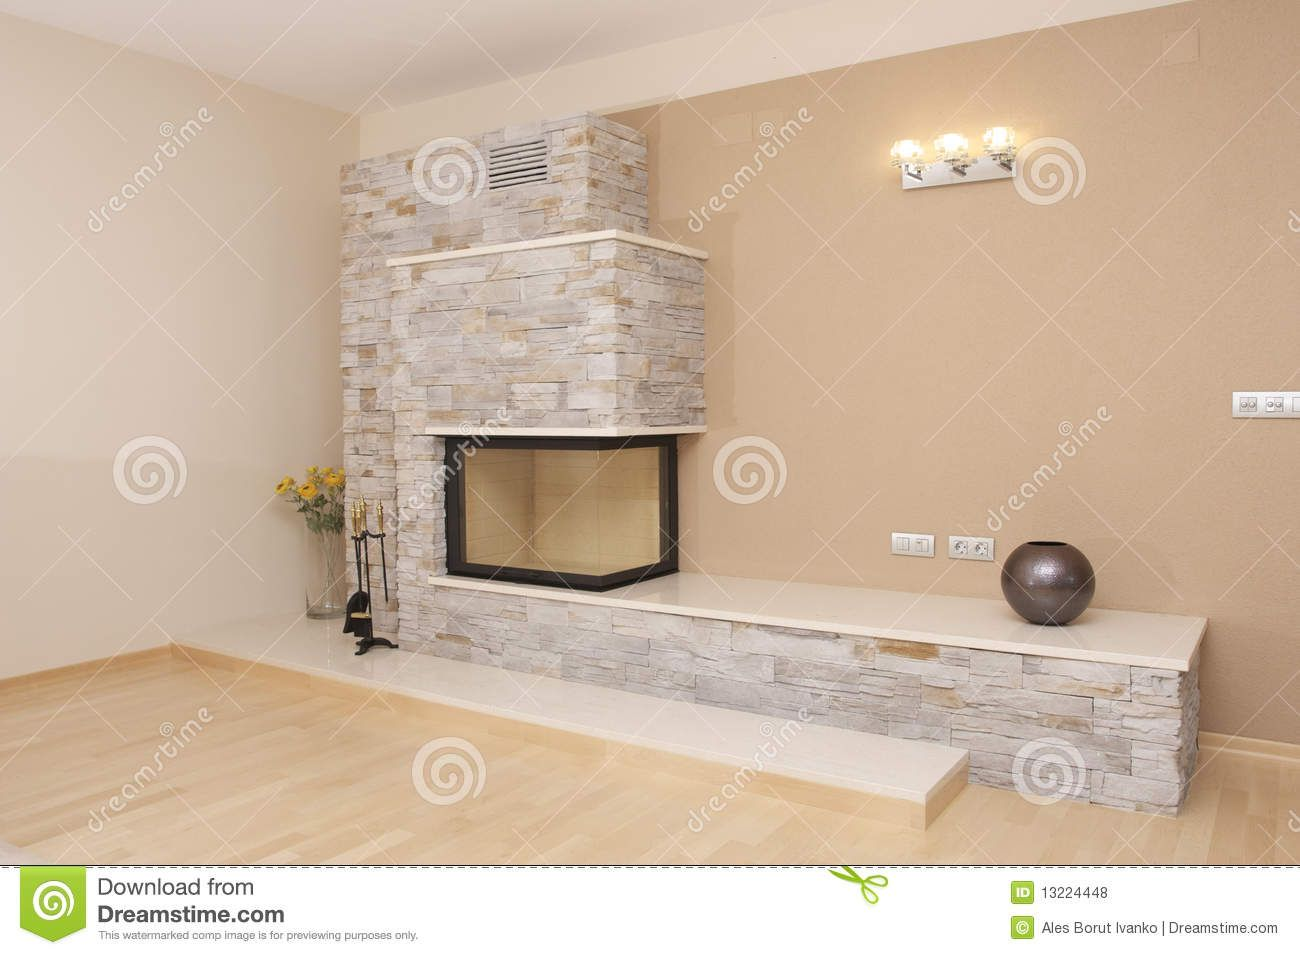 Fireplace Download From Over 64 Million High Quality Stock Photos Images Vectors Sign Up For Free Today Image Fireplace Home Fireplace Fireplace Design Download fireplace living room